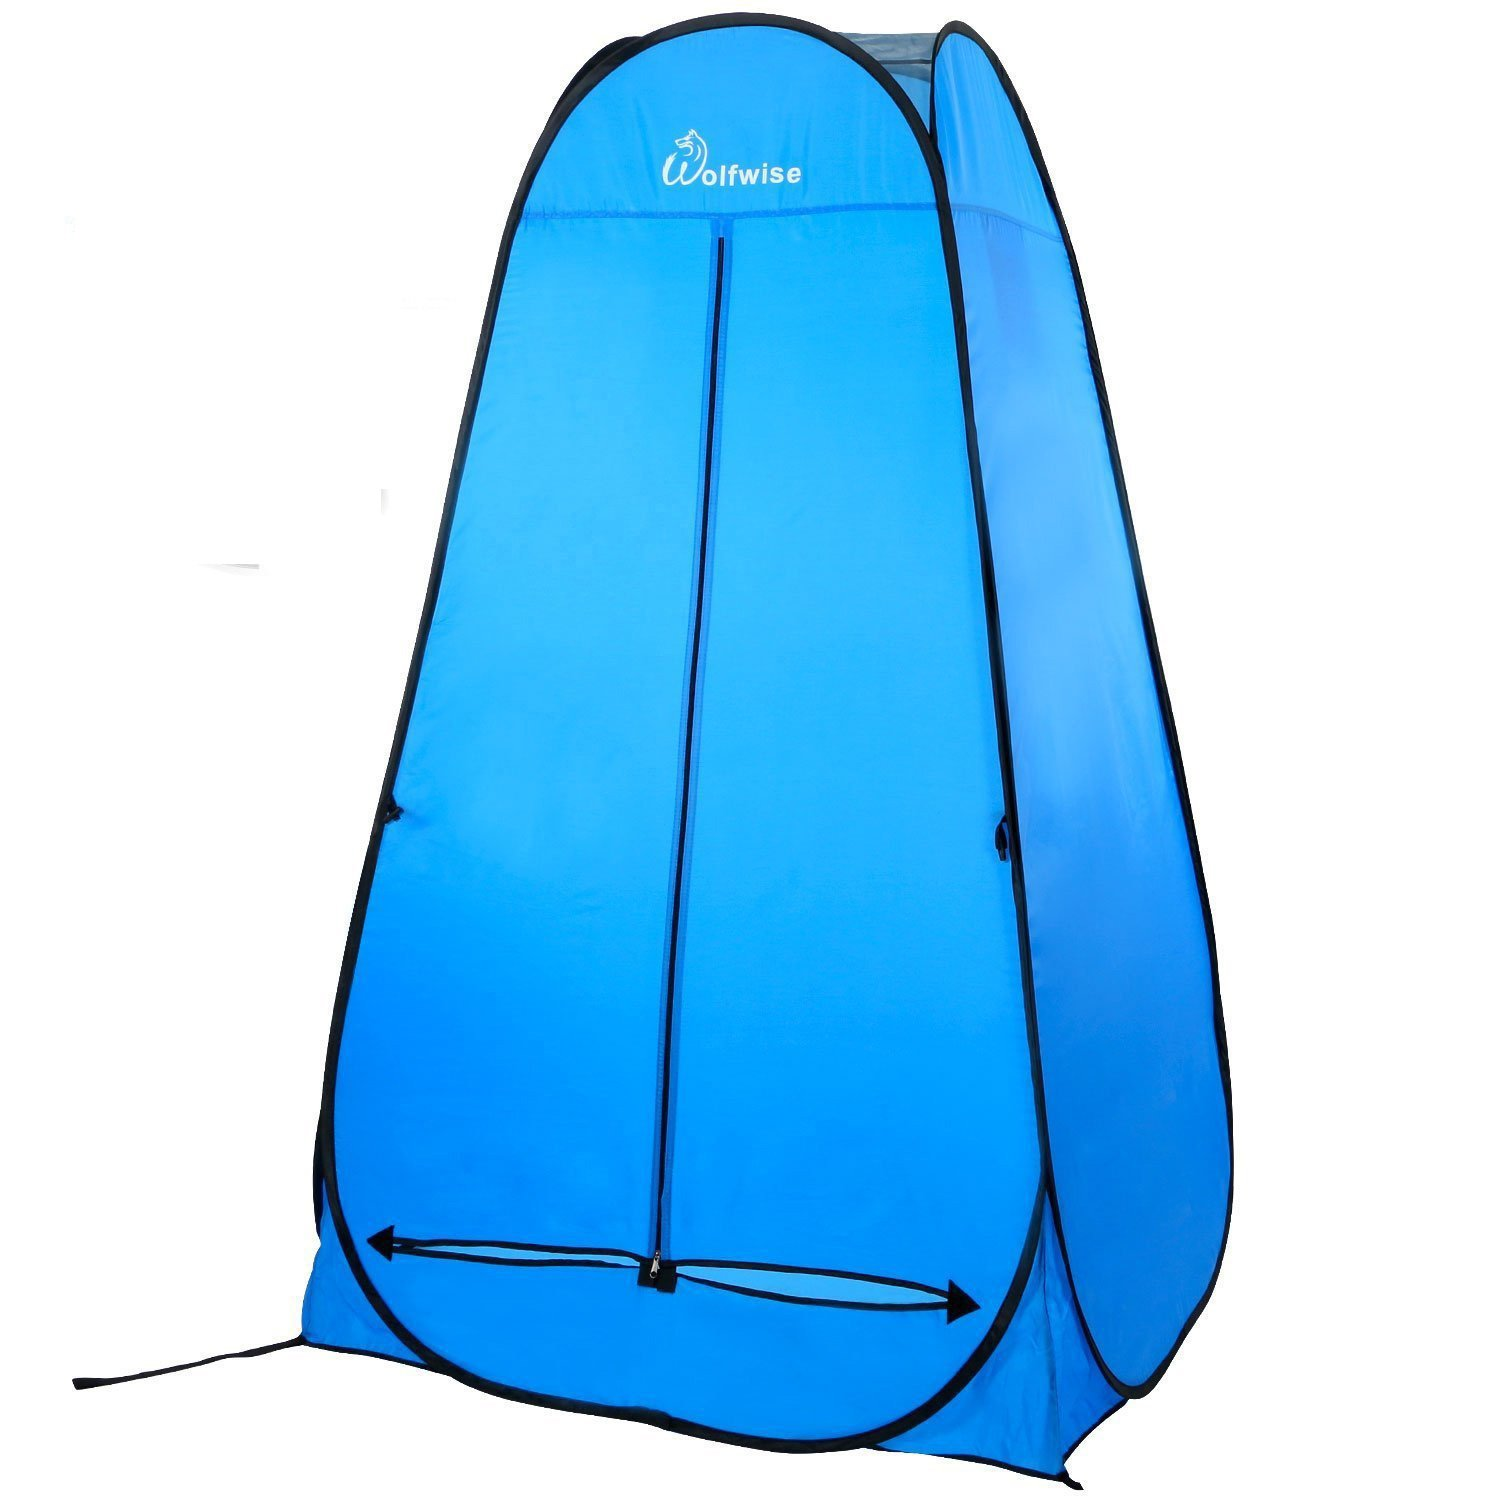 WolfWise Pop Up Changing Tent